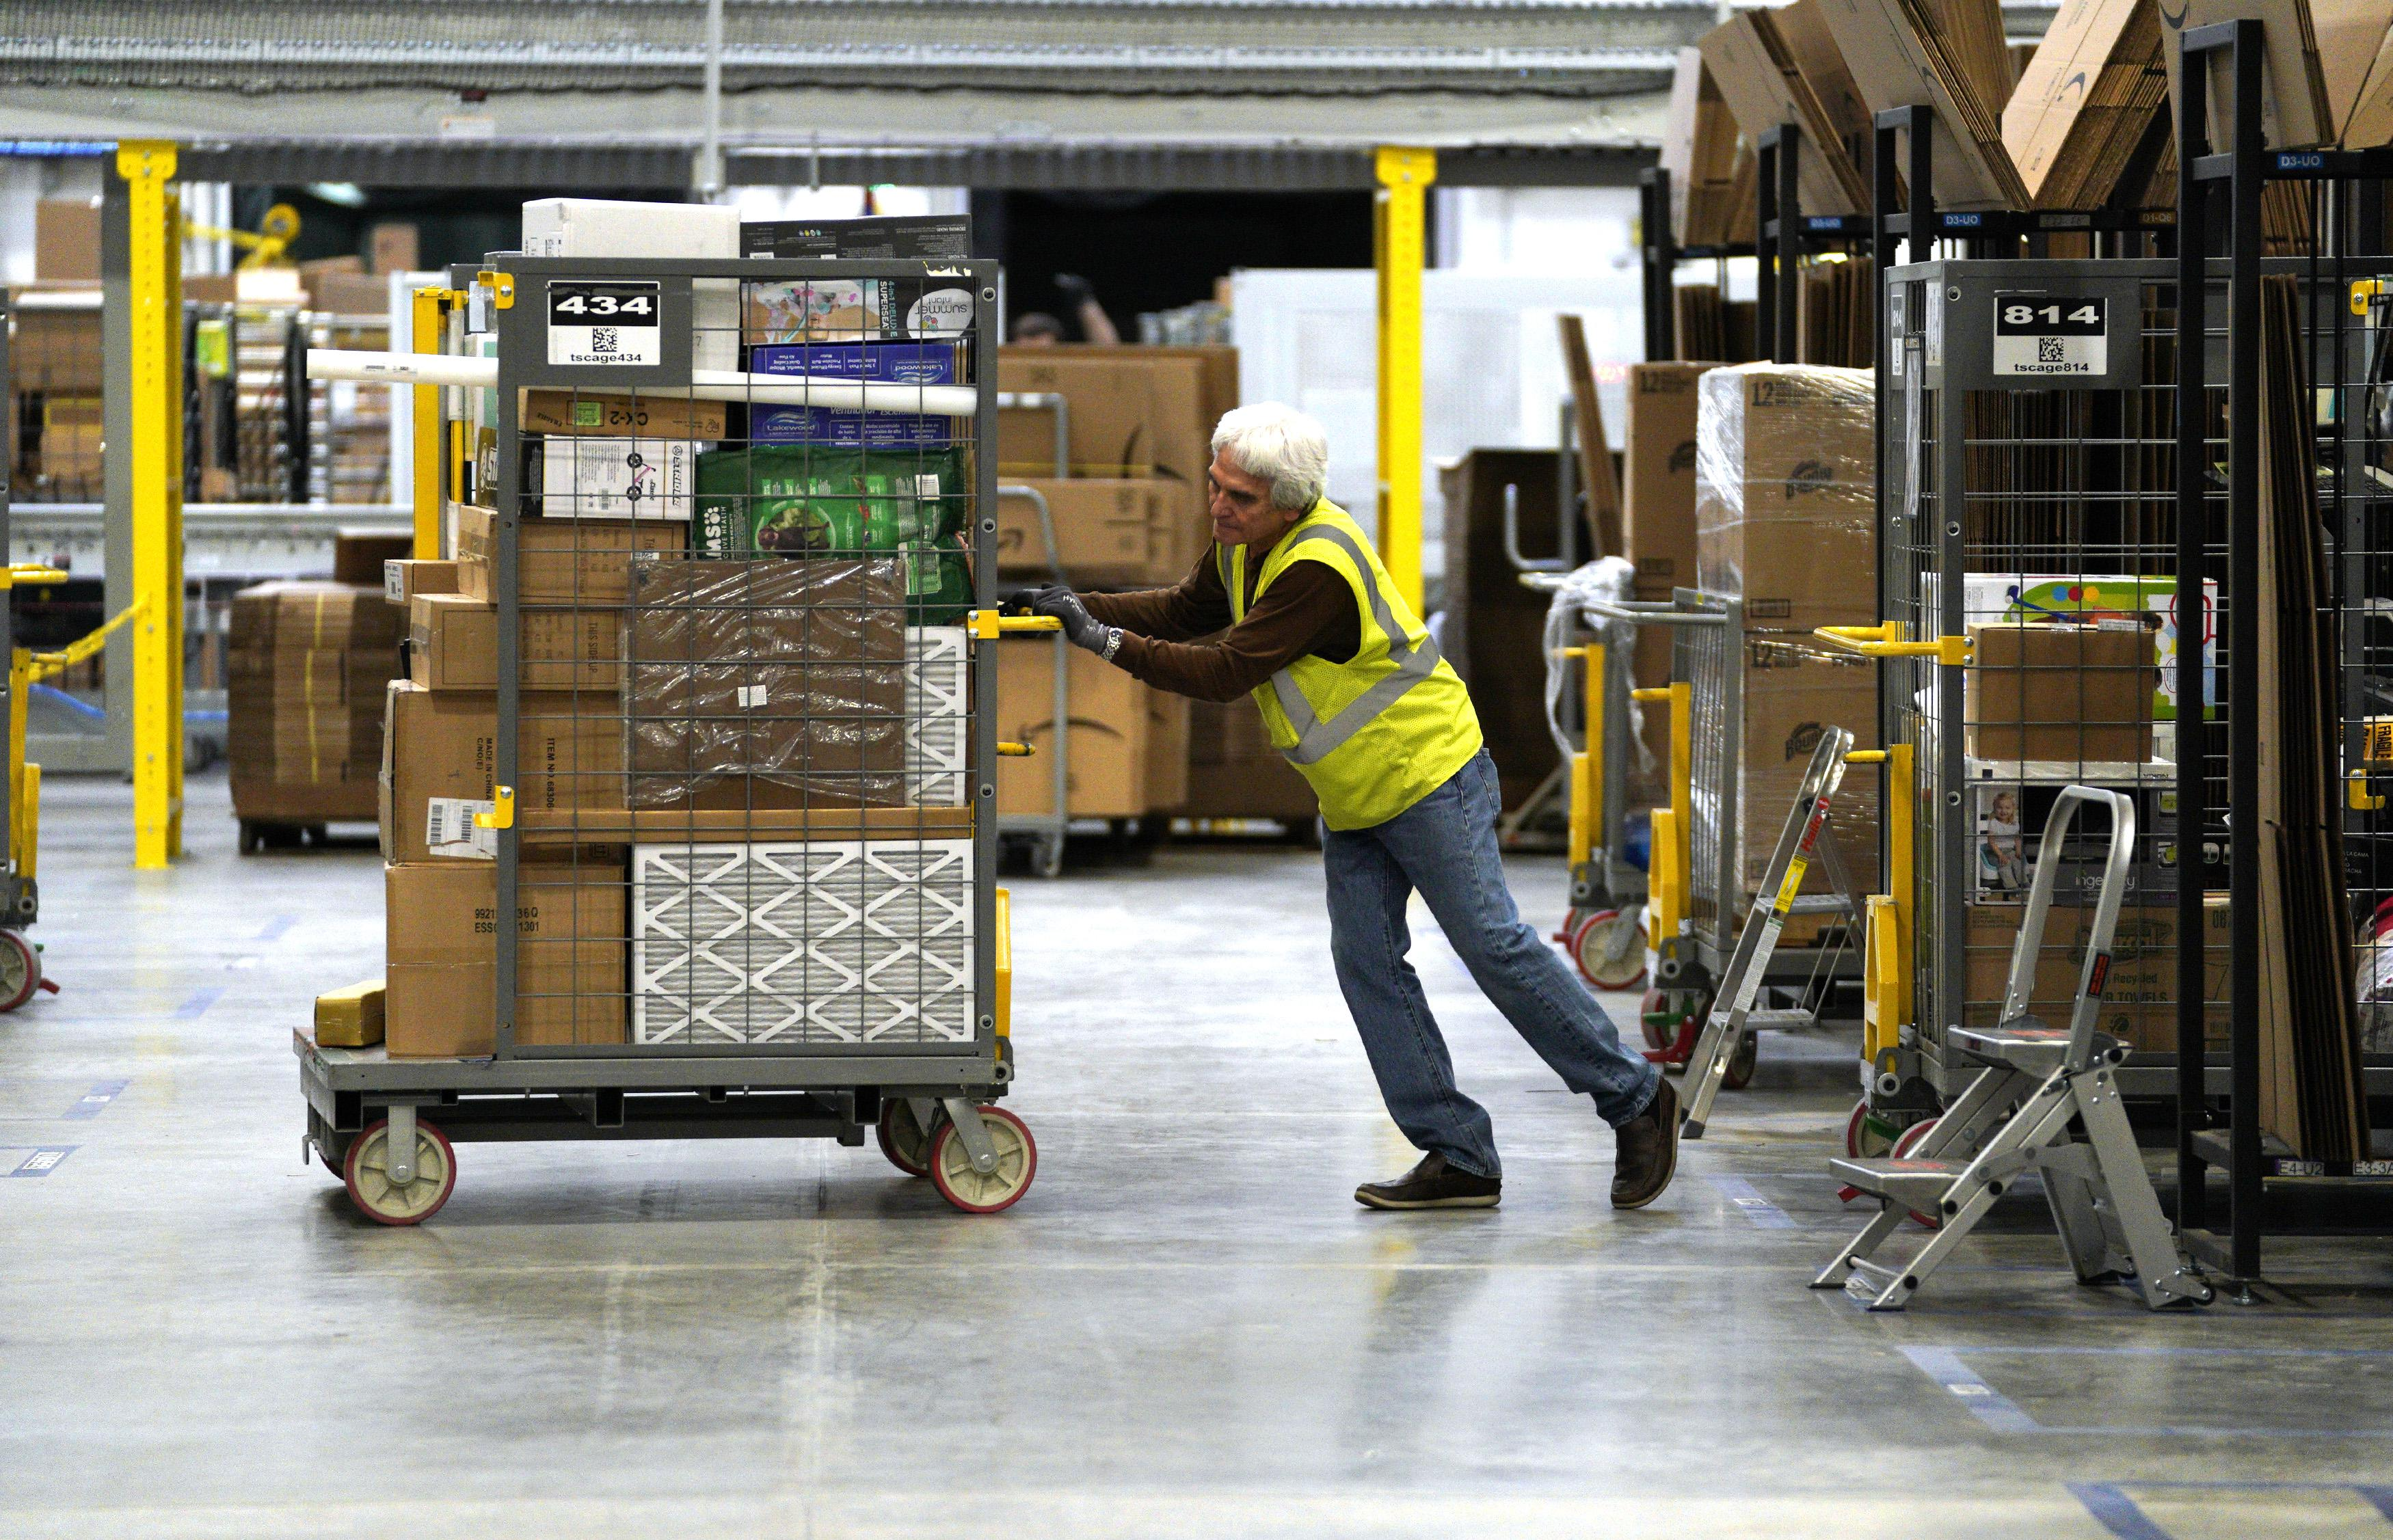 A worker moves boxes at an Amazon fulfillment center.